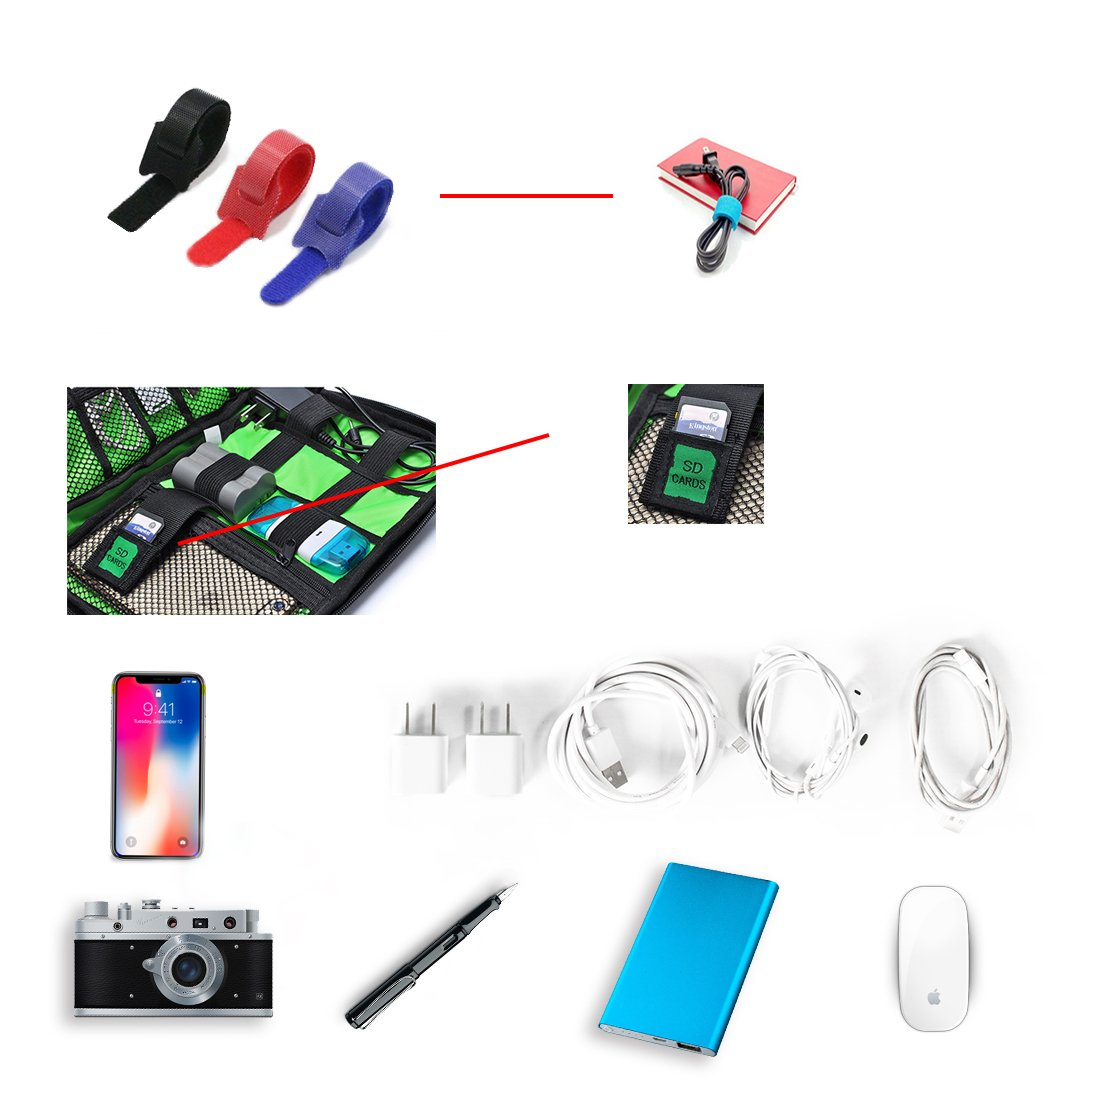 Travel Universal Cable Organizer Electronics Accessories Cases for Various USB, Phone, Charger and Cable, Black by zhenrong (Image #3)